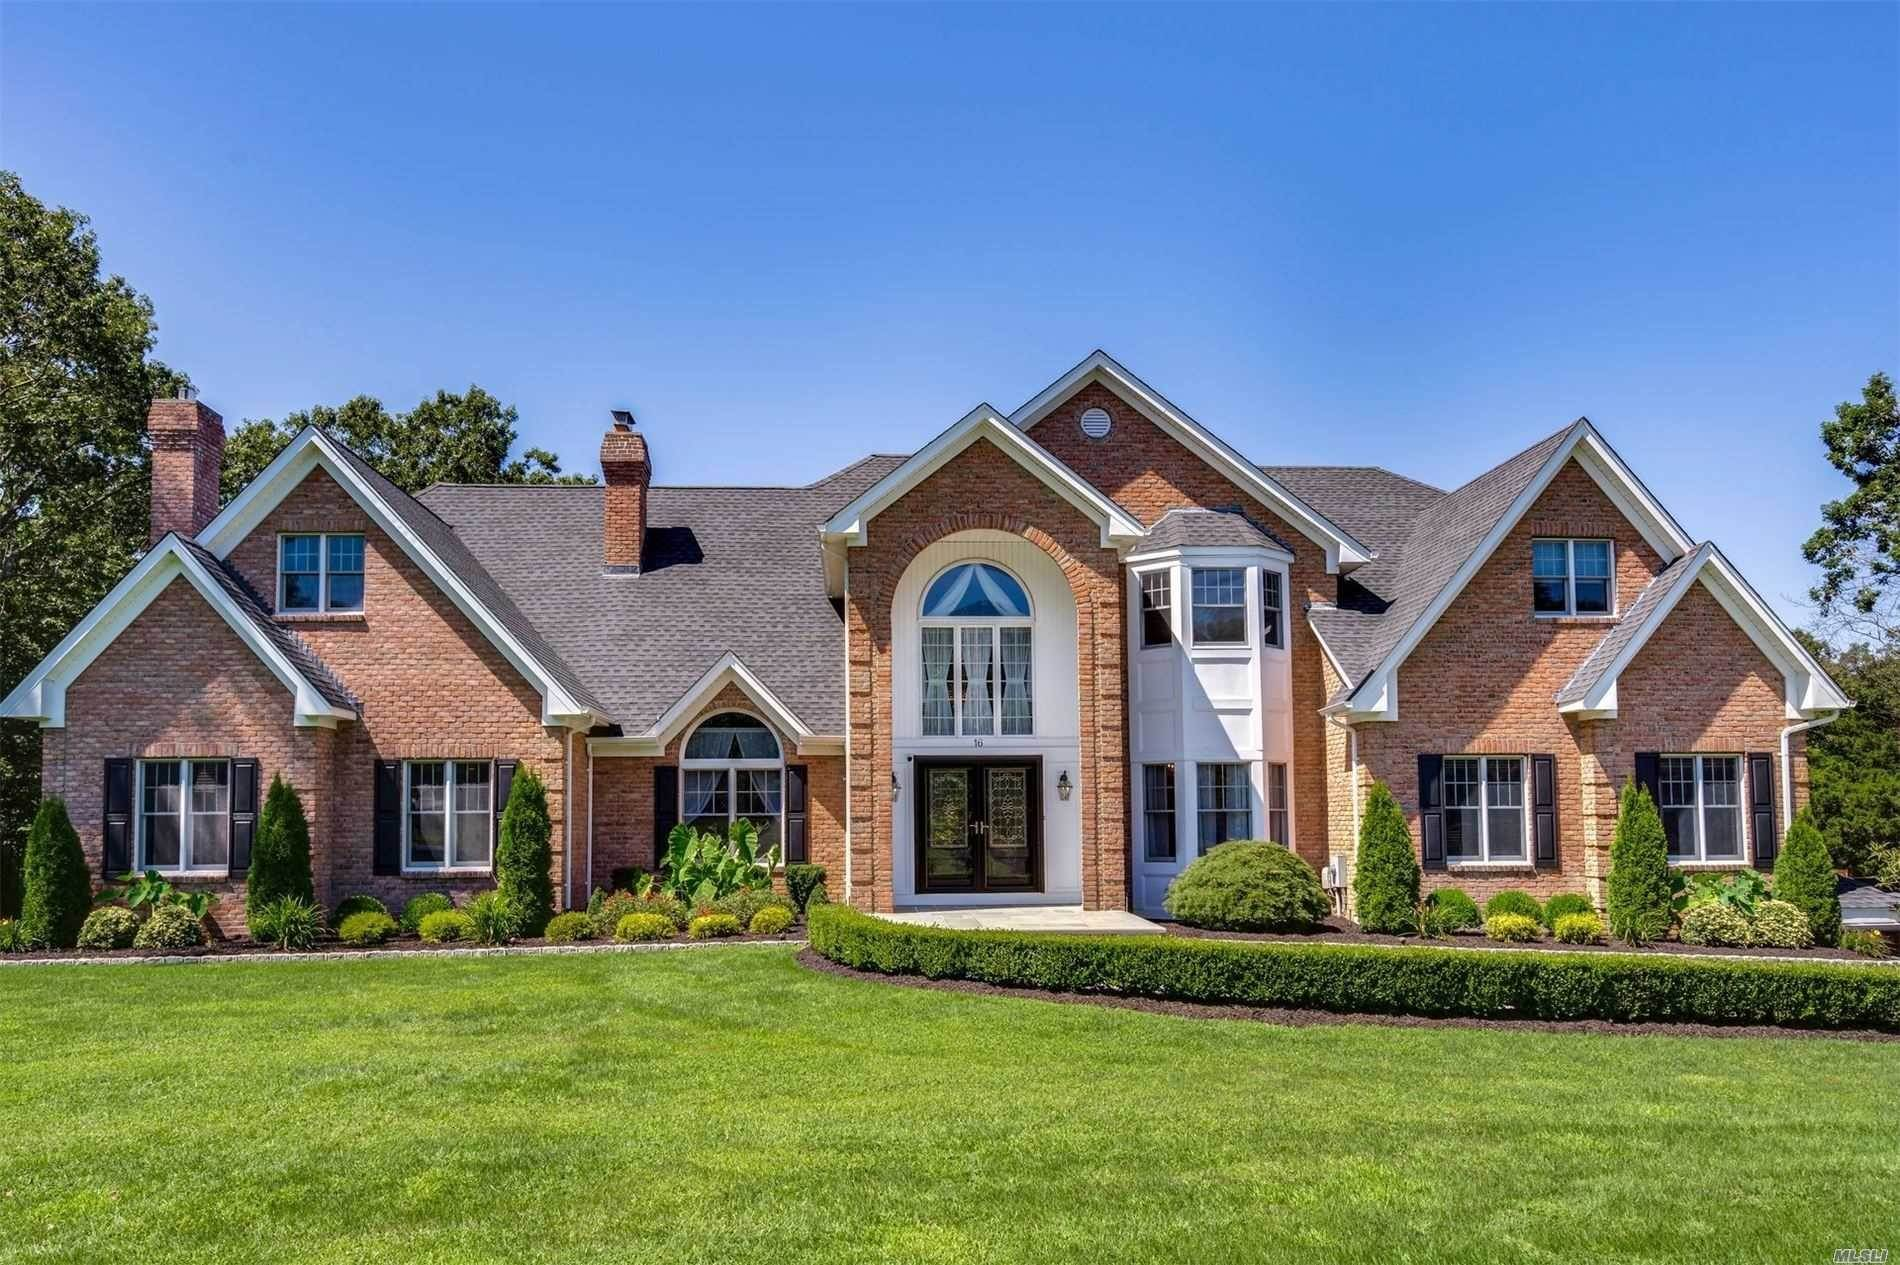 Residential for Sale at 16 Wood Hollow Lane Northport, New York 11768 United States